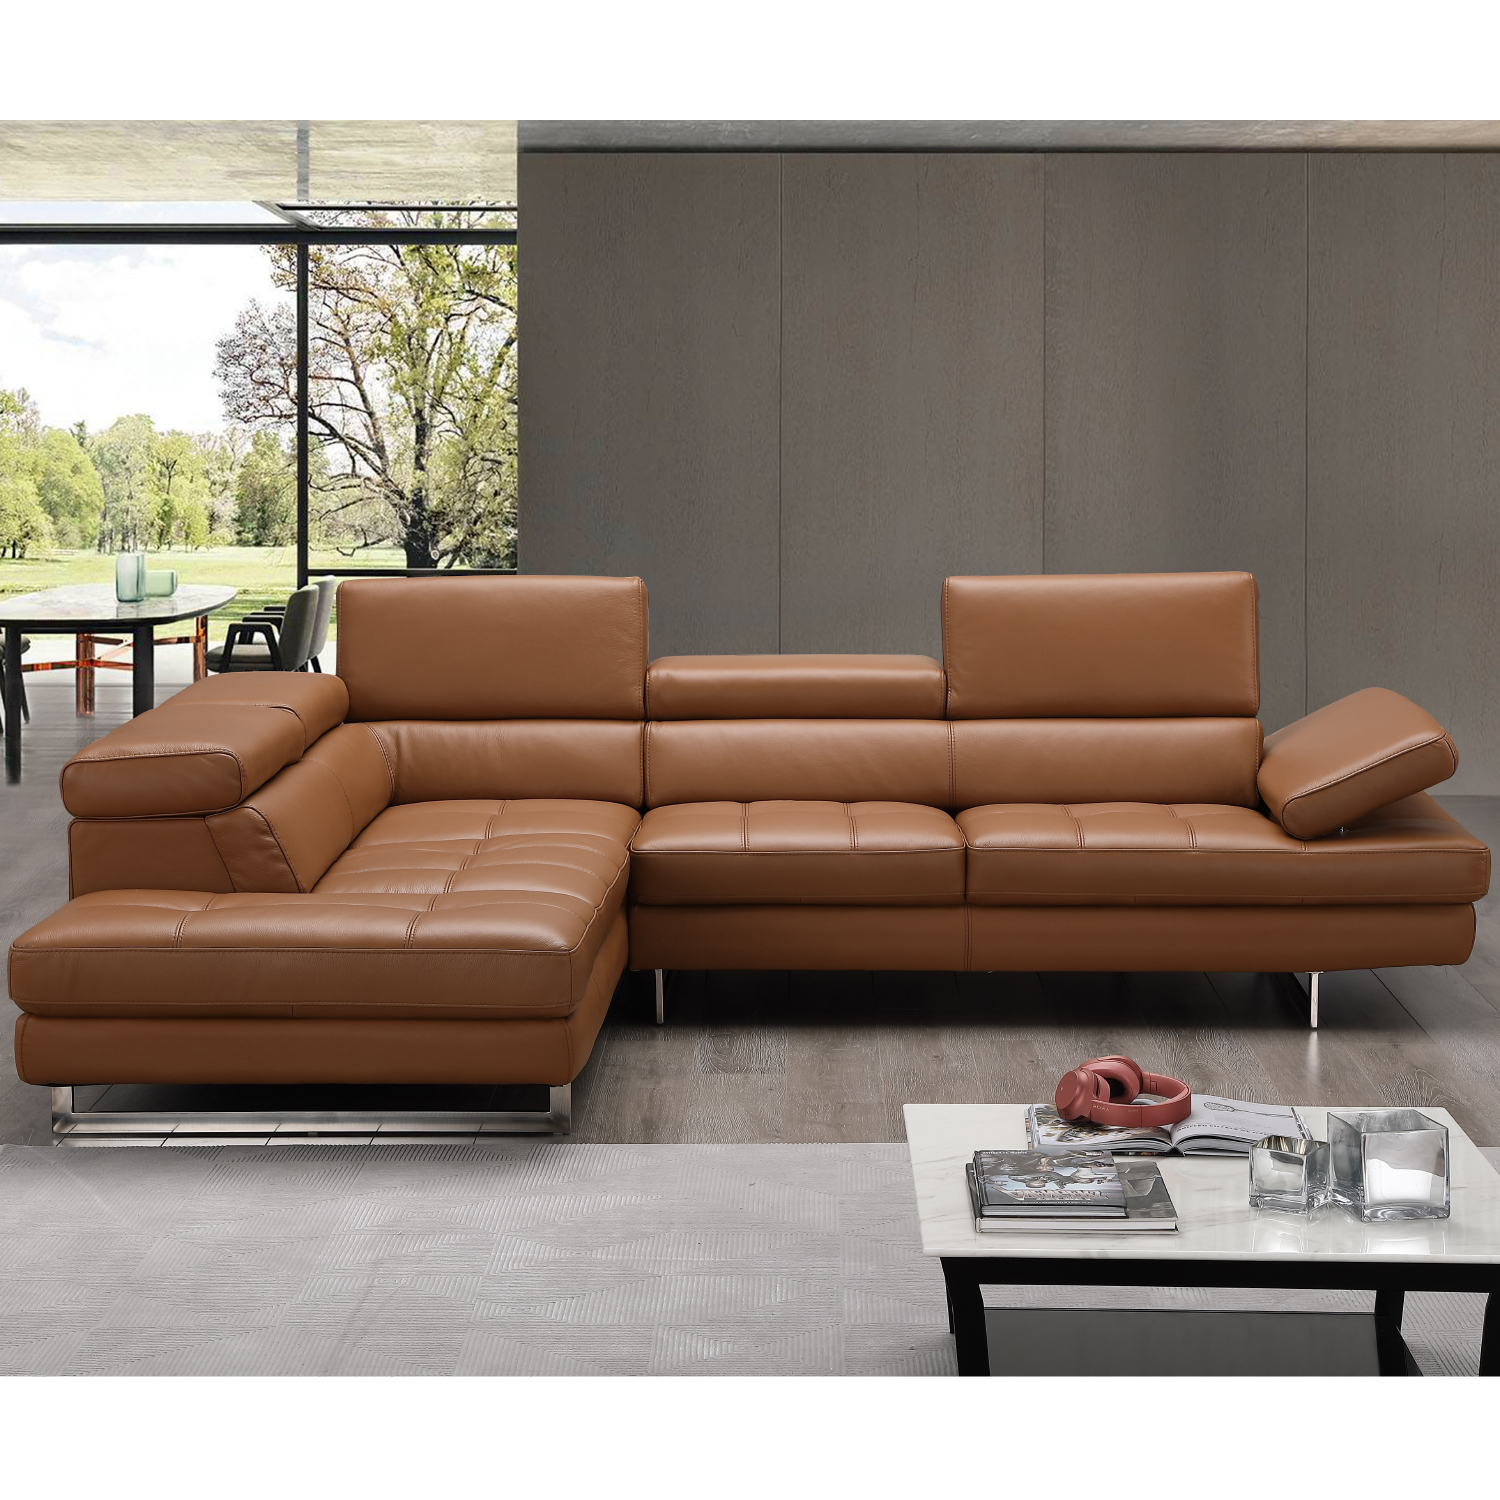 Peachy Napoli A761 Italian Leather Sectional In Caramel W Left Facing Chaise By J And M Furniture Machost Co Dining Chair Design Ideas Machostcouk